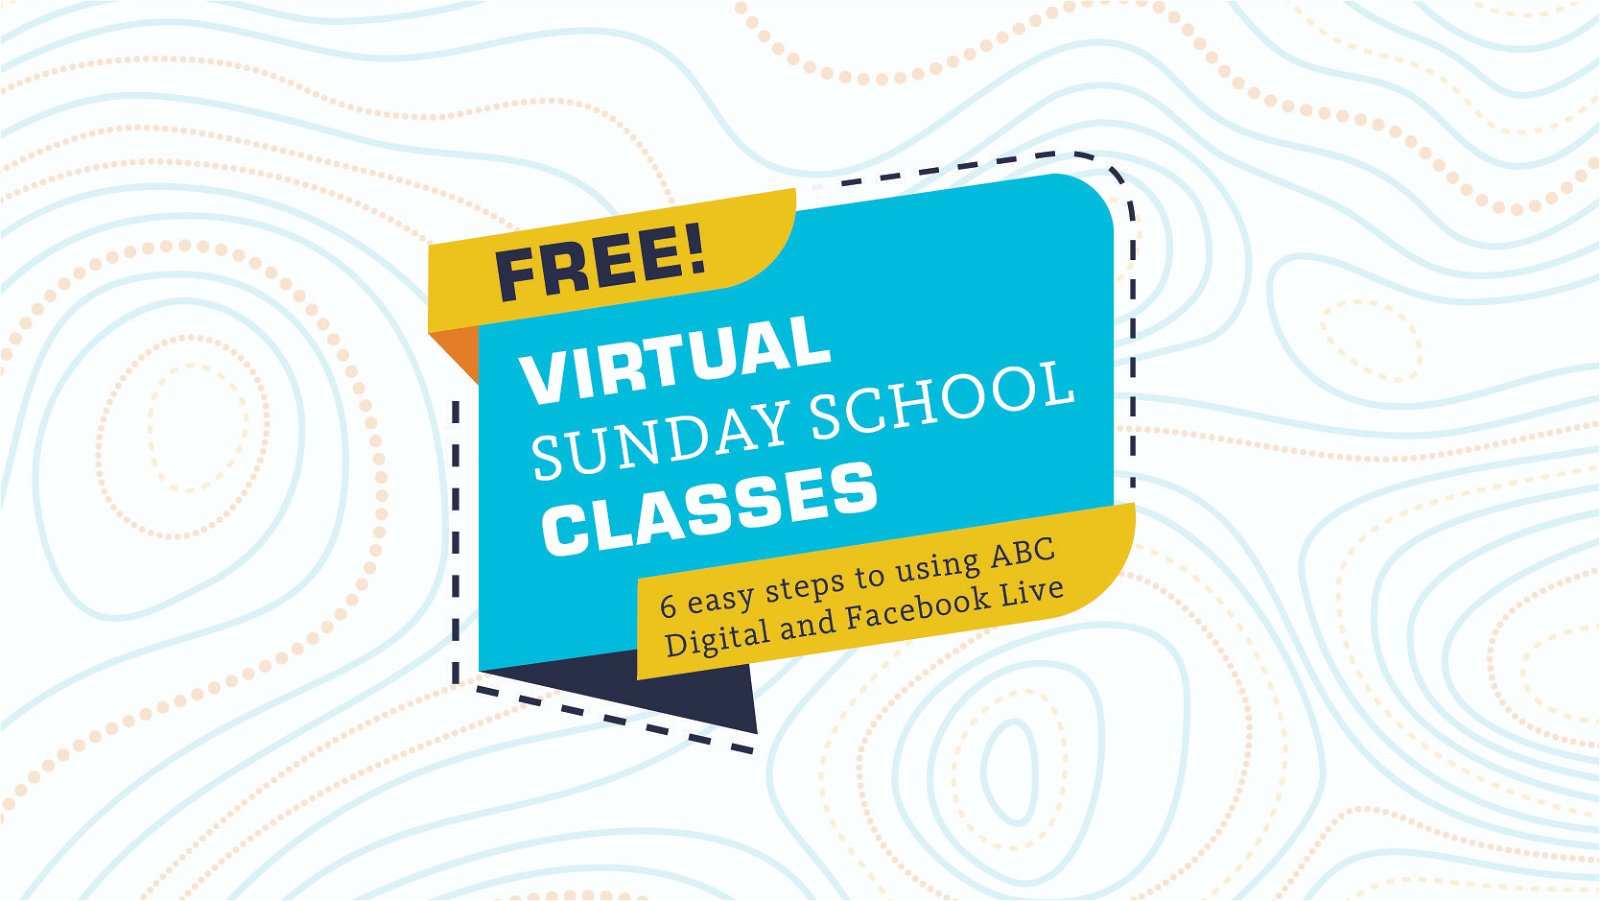 Run a Virtual Sunday School Class for FREE